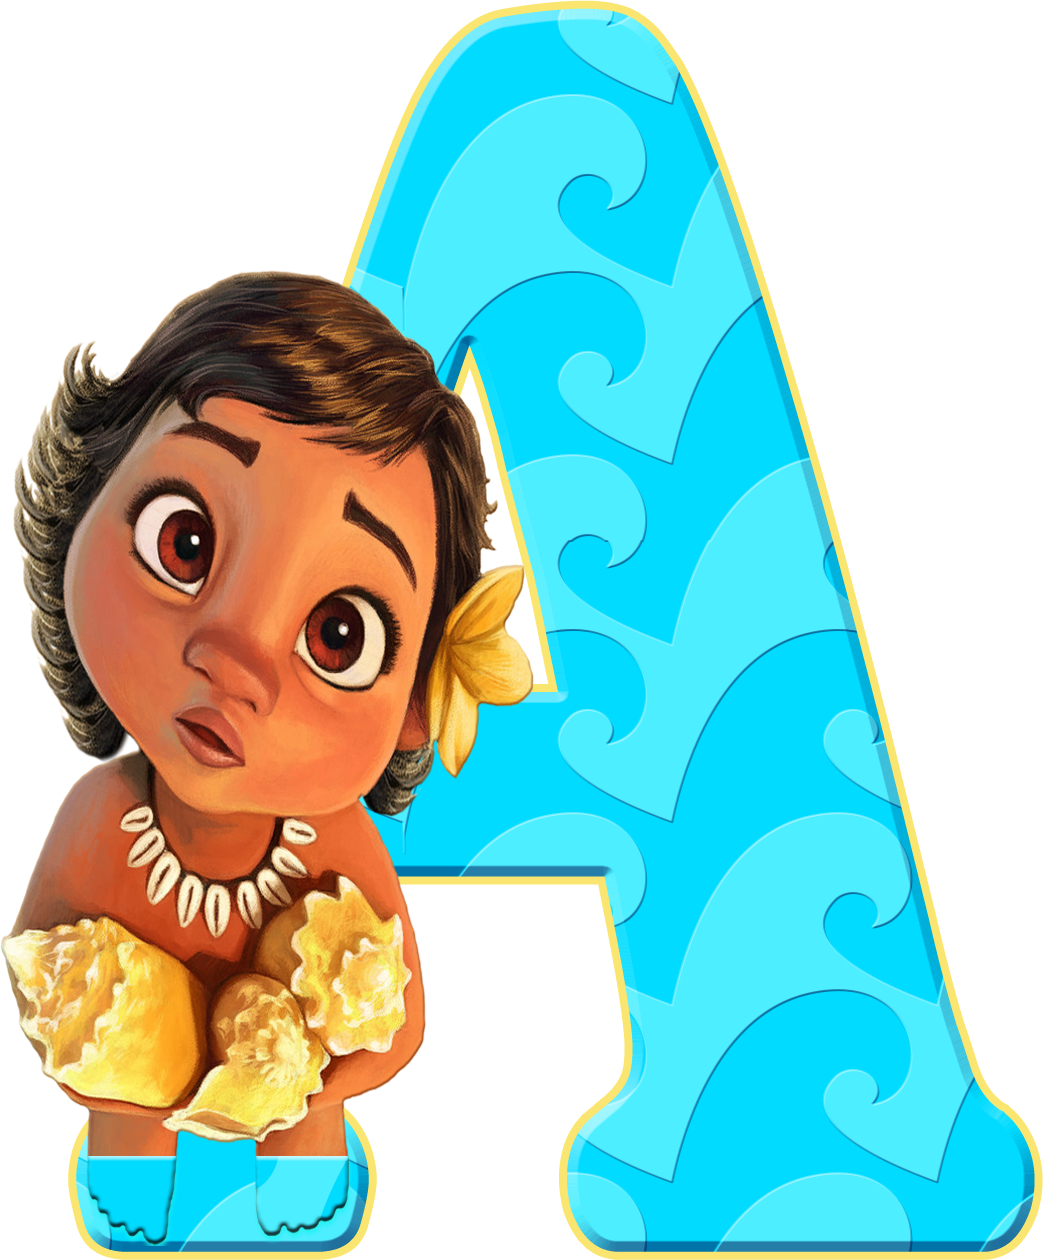 Baby free icons and. Moana clipart oar